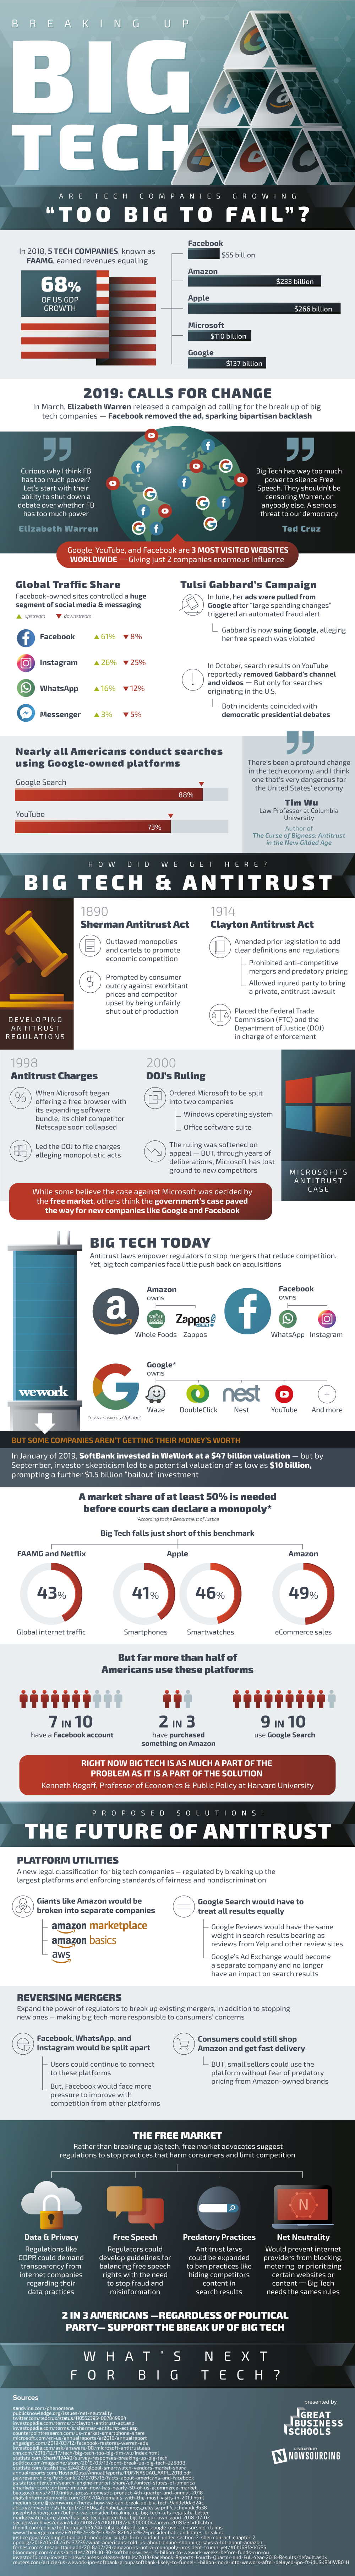 Breaking up big tech infographic